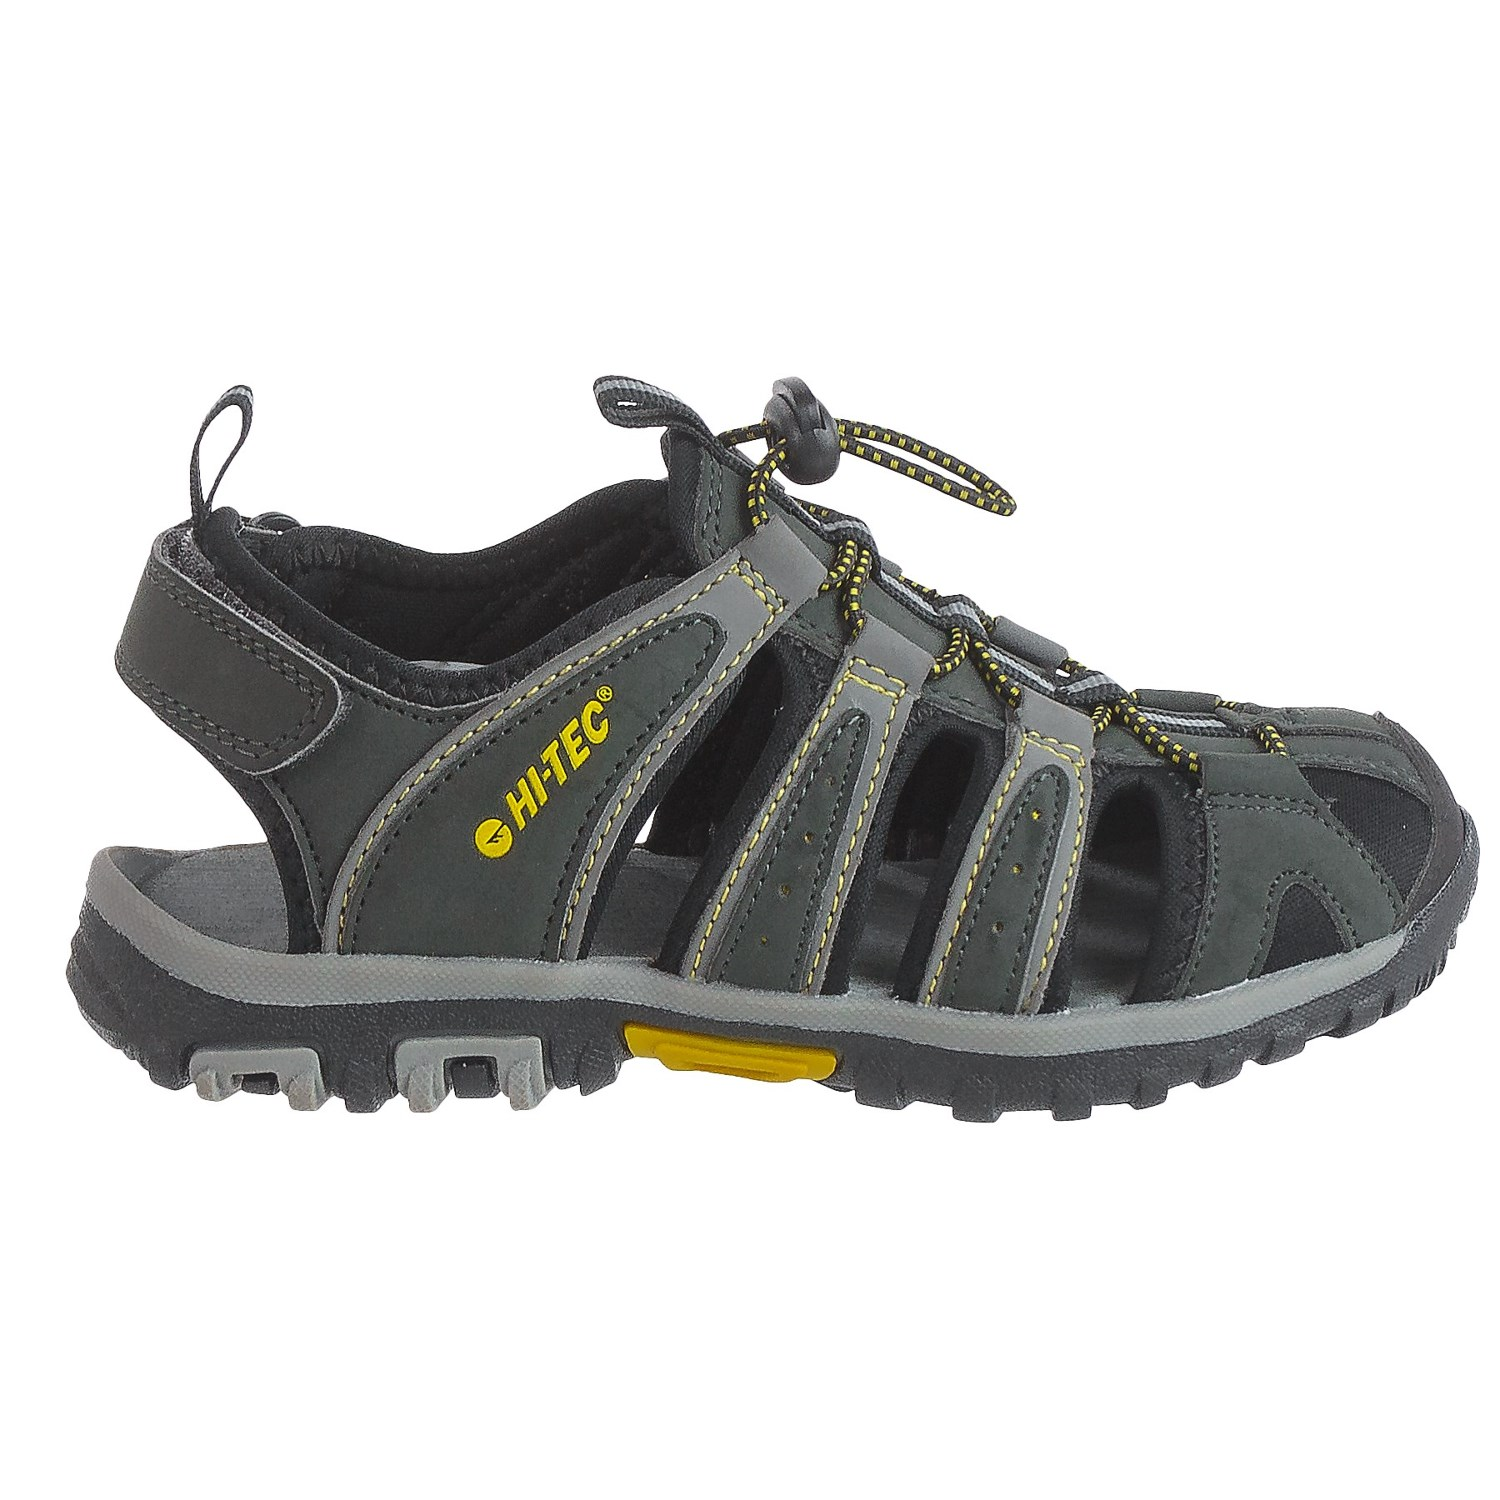 b49e0e54088 Hi-Tec Cove Sport Sandals (For Toddlers and Little Kids) - Save 50%